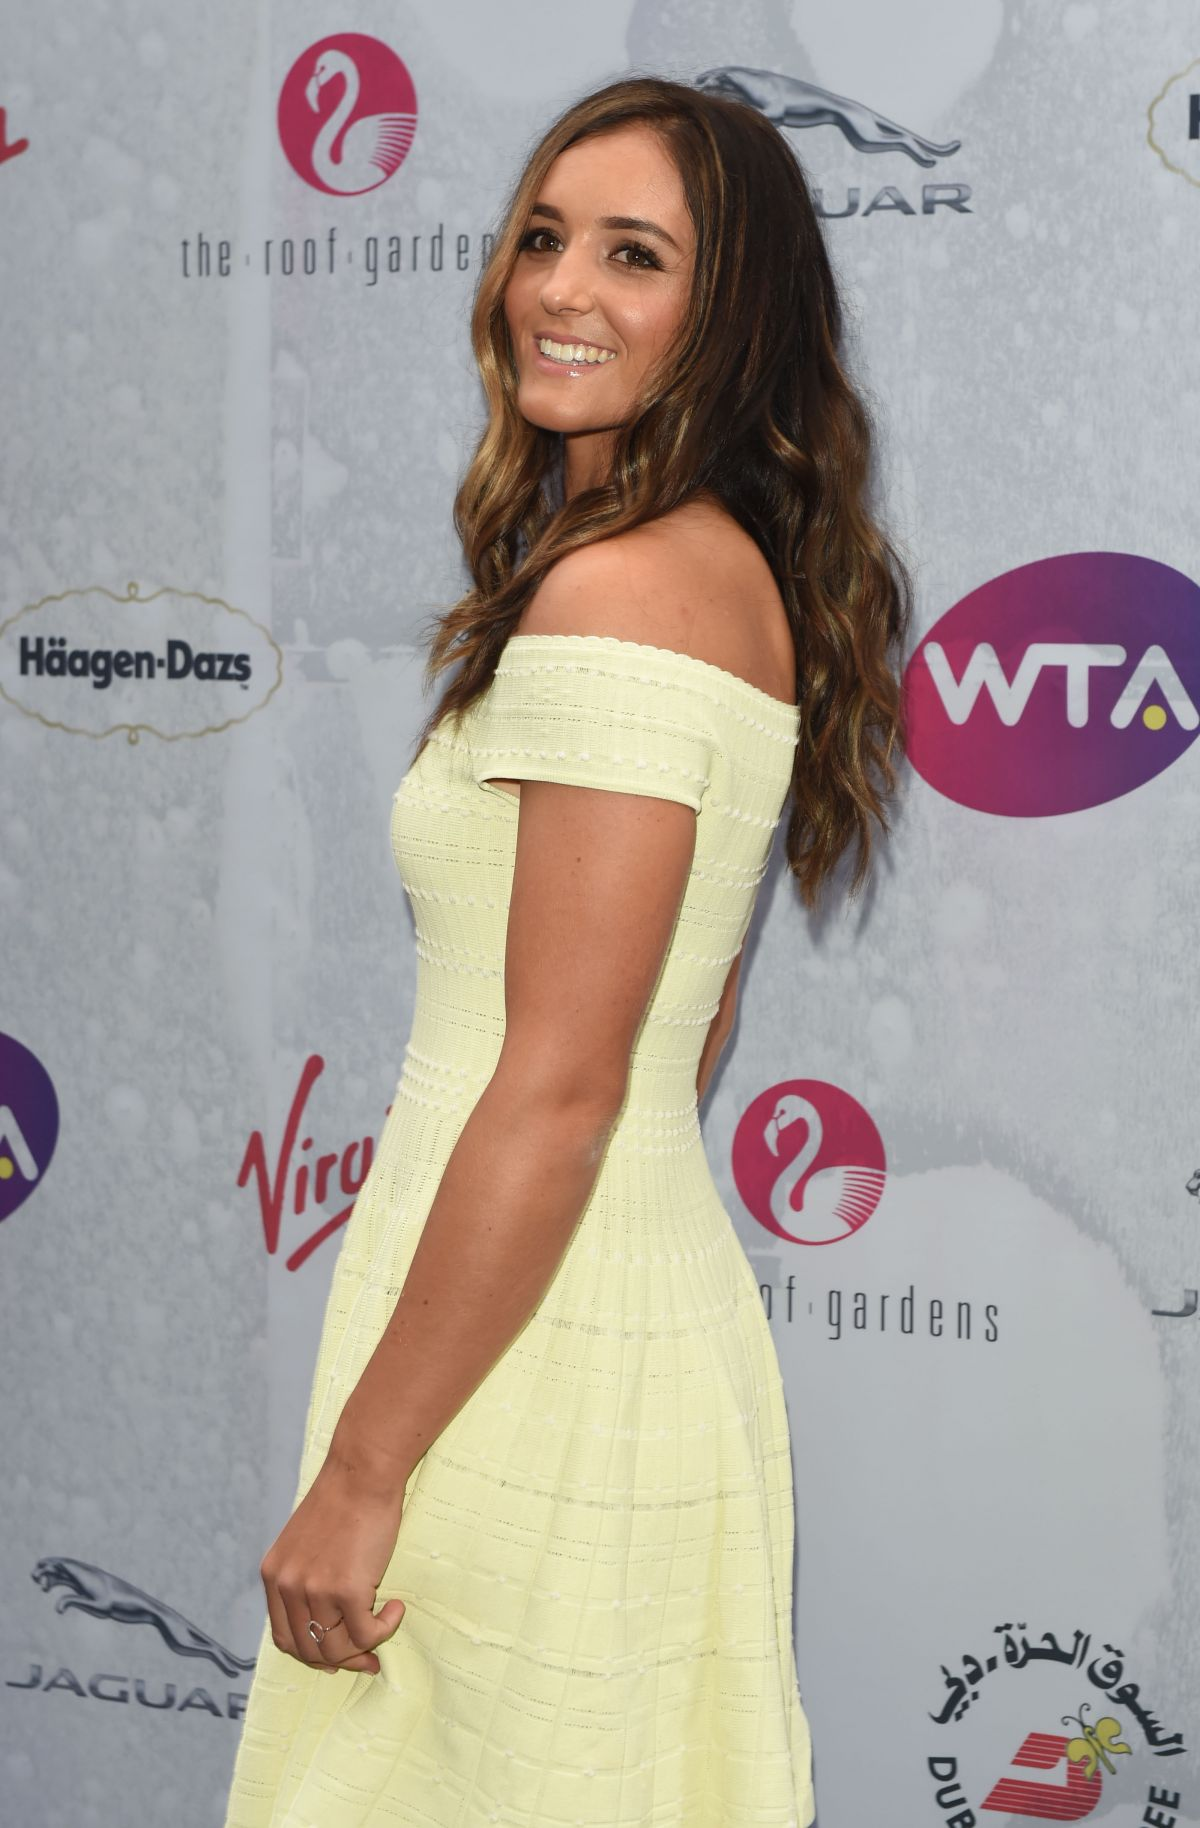 LAURA ROBSON at WTA Pre-Wimbledon Party in London 06/23/2016